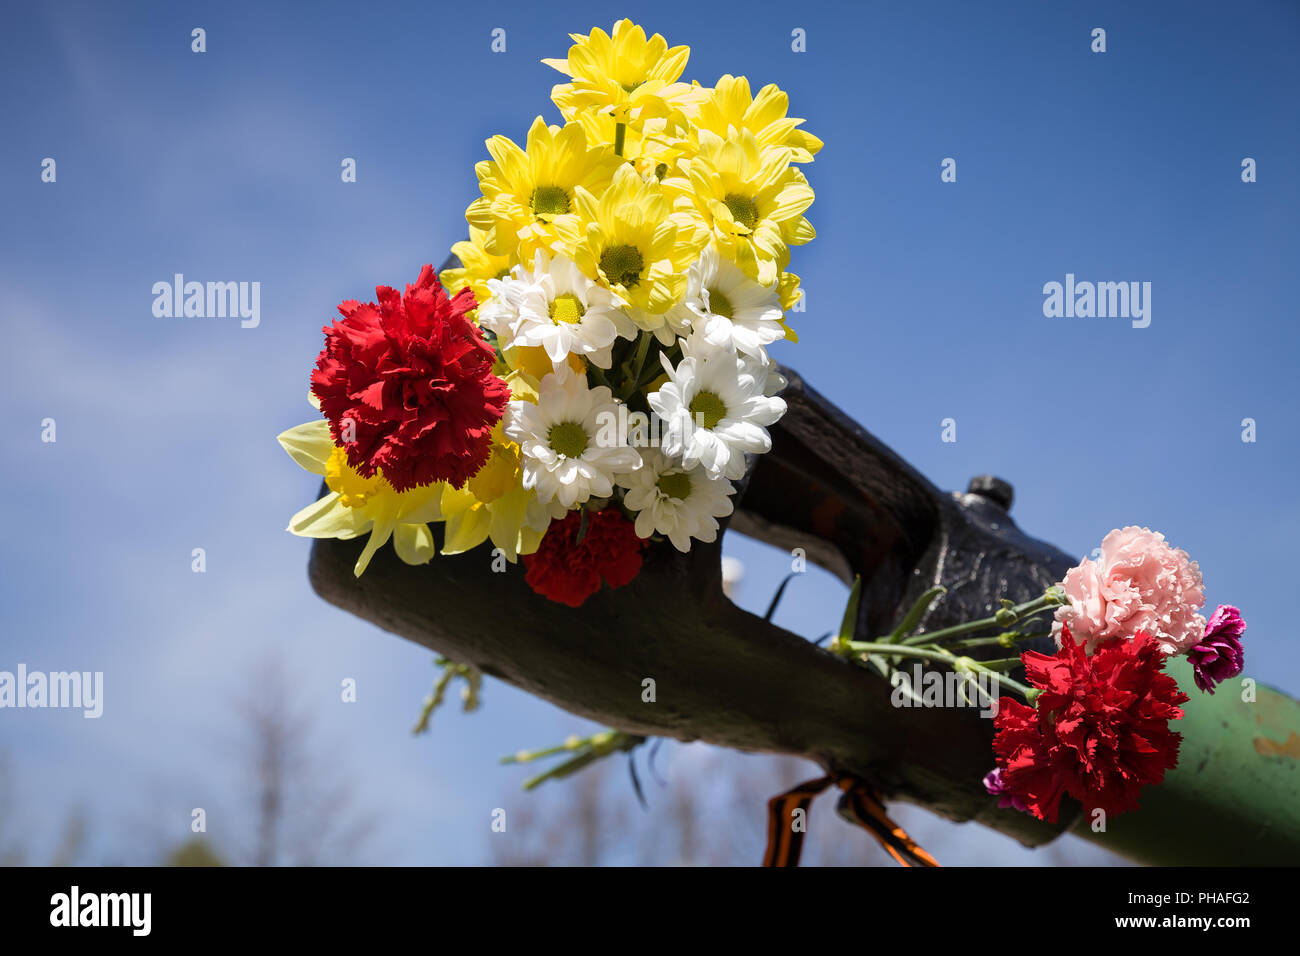 Beautifrul flowers in the barrel of the tank. May 9th. Victory day in Russia. Peace in the world. Memorial day Stock Photo